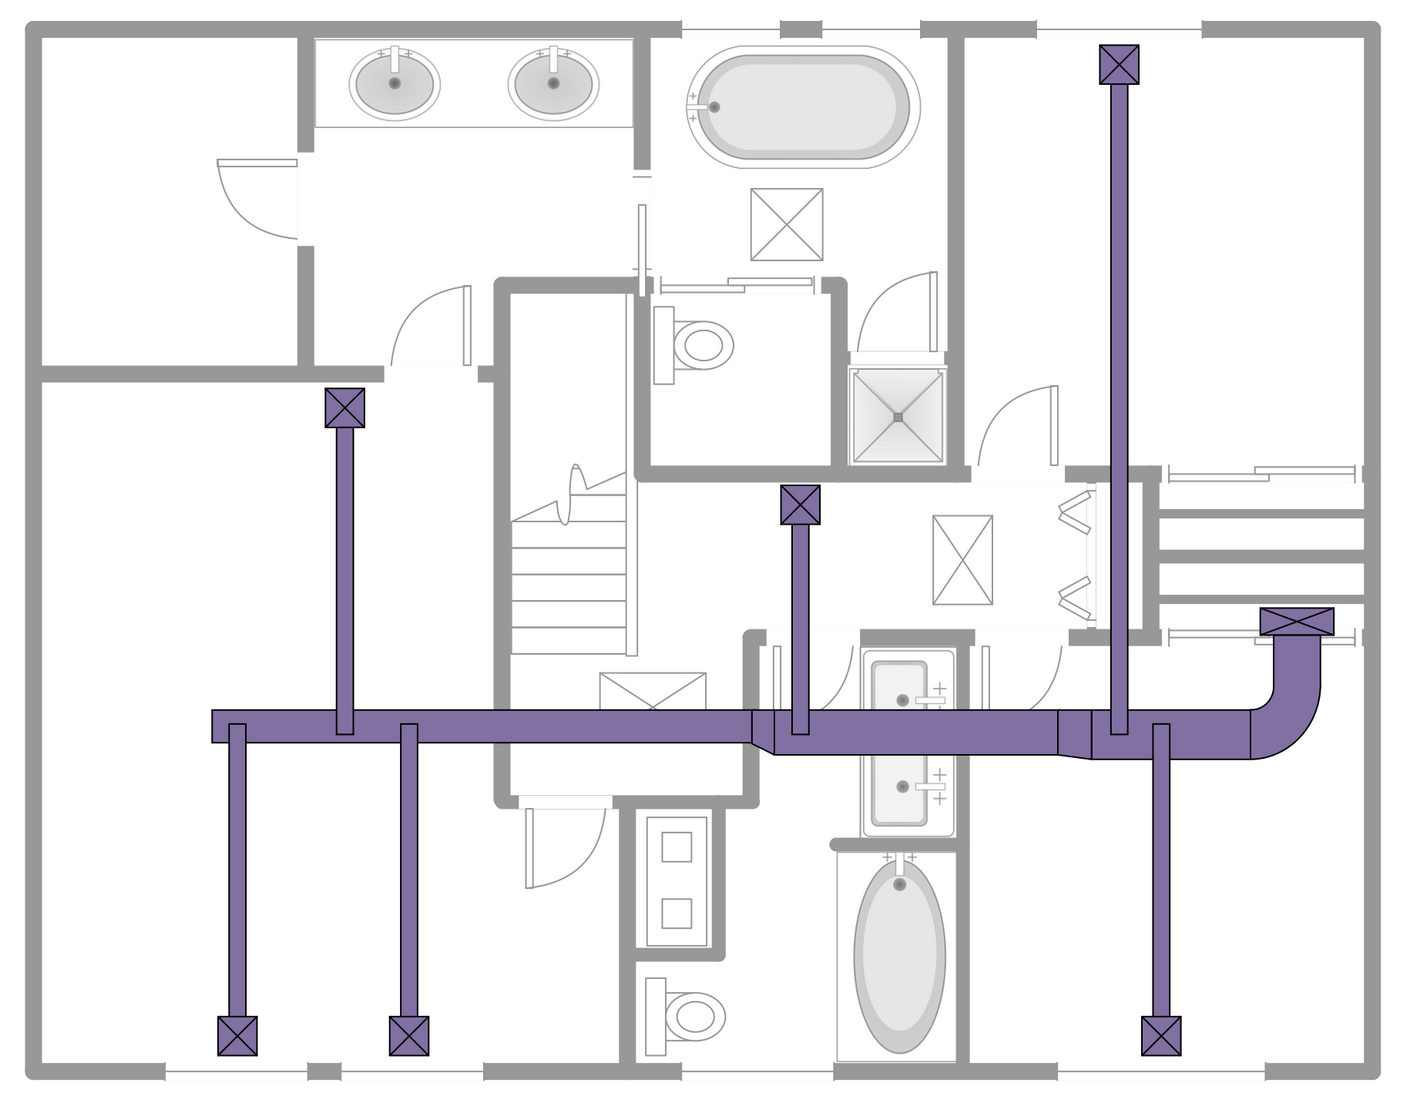 Strange Hvac Duct Drawing Wiring Diagram Wiring Digital Resources Spoatbouhousnl